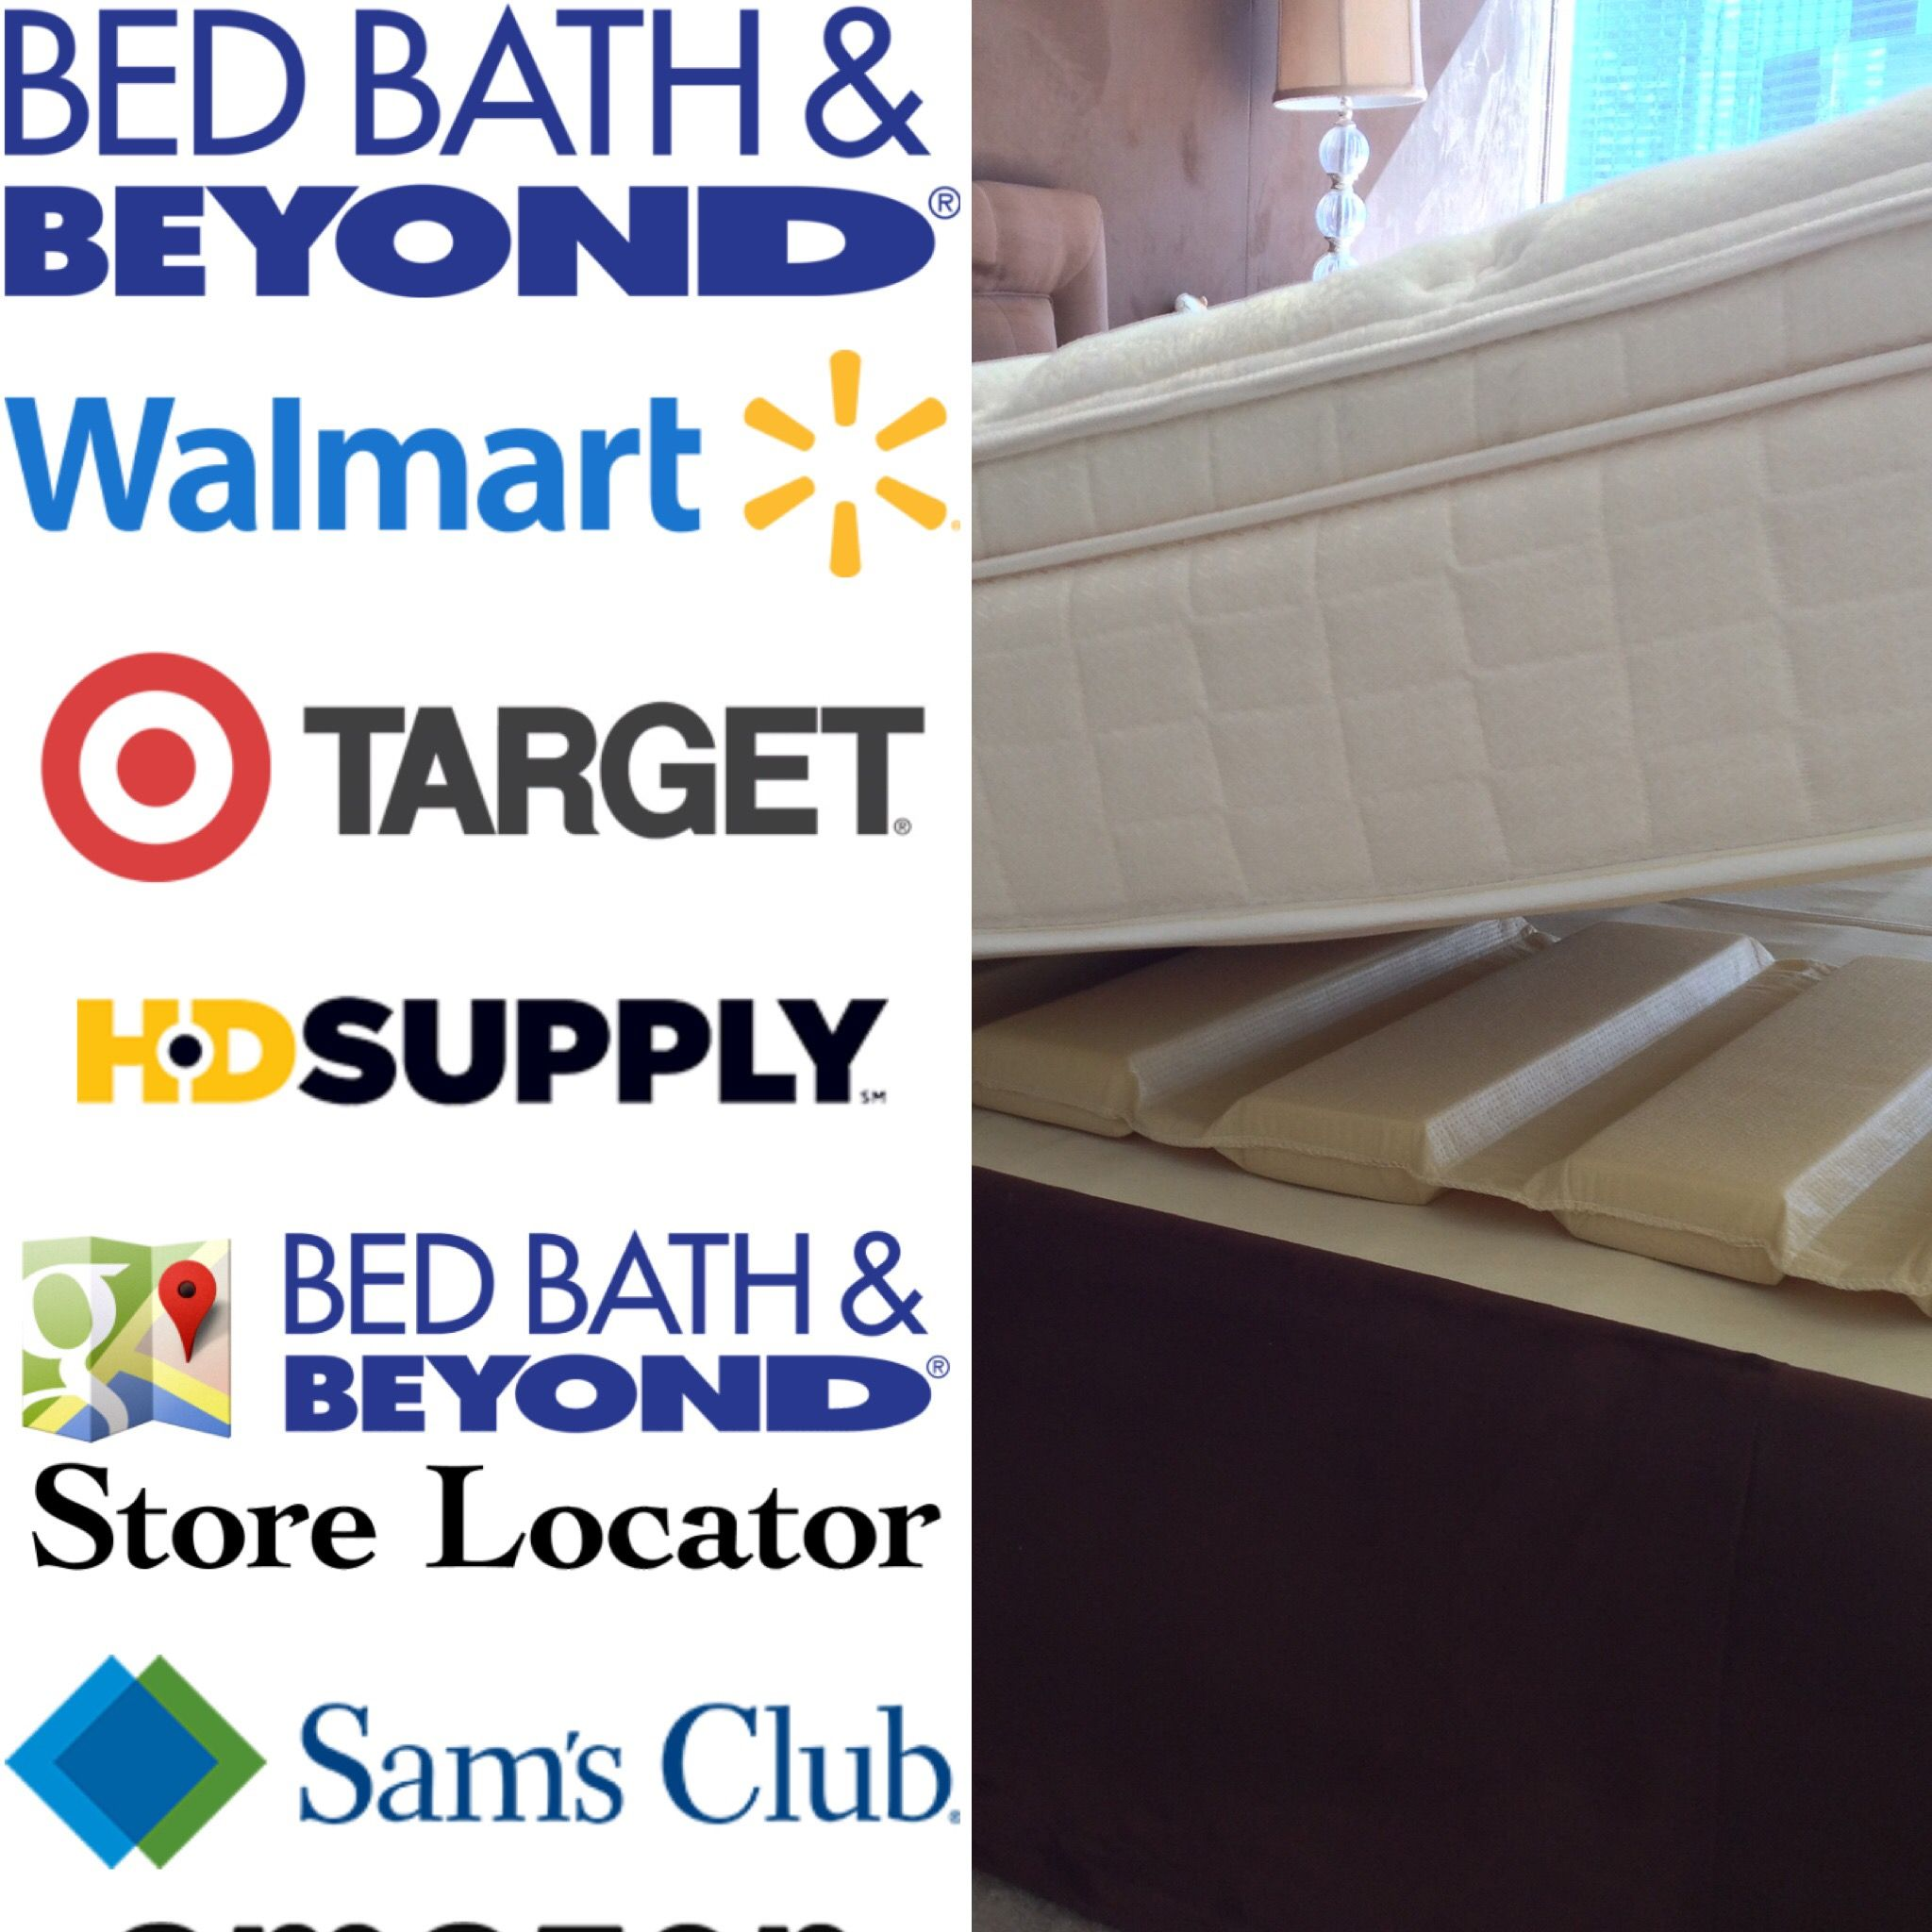 Sold everywhere Bed bath and beyond, Bed & bath, Walmart